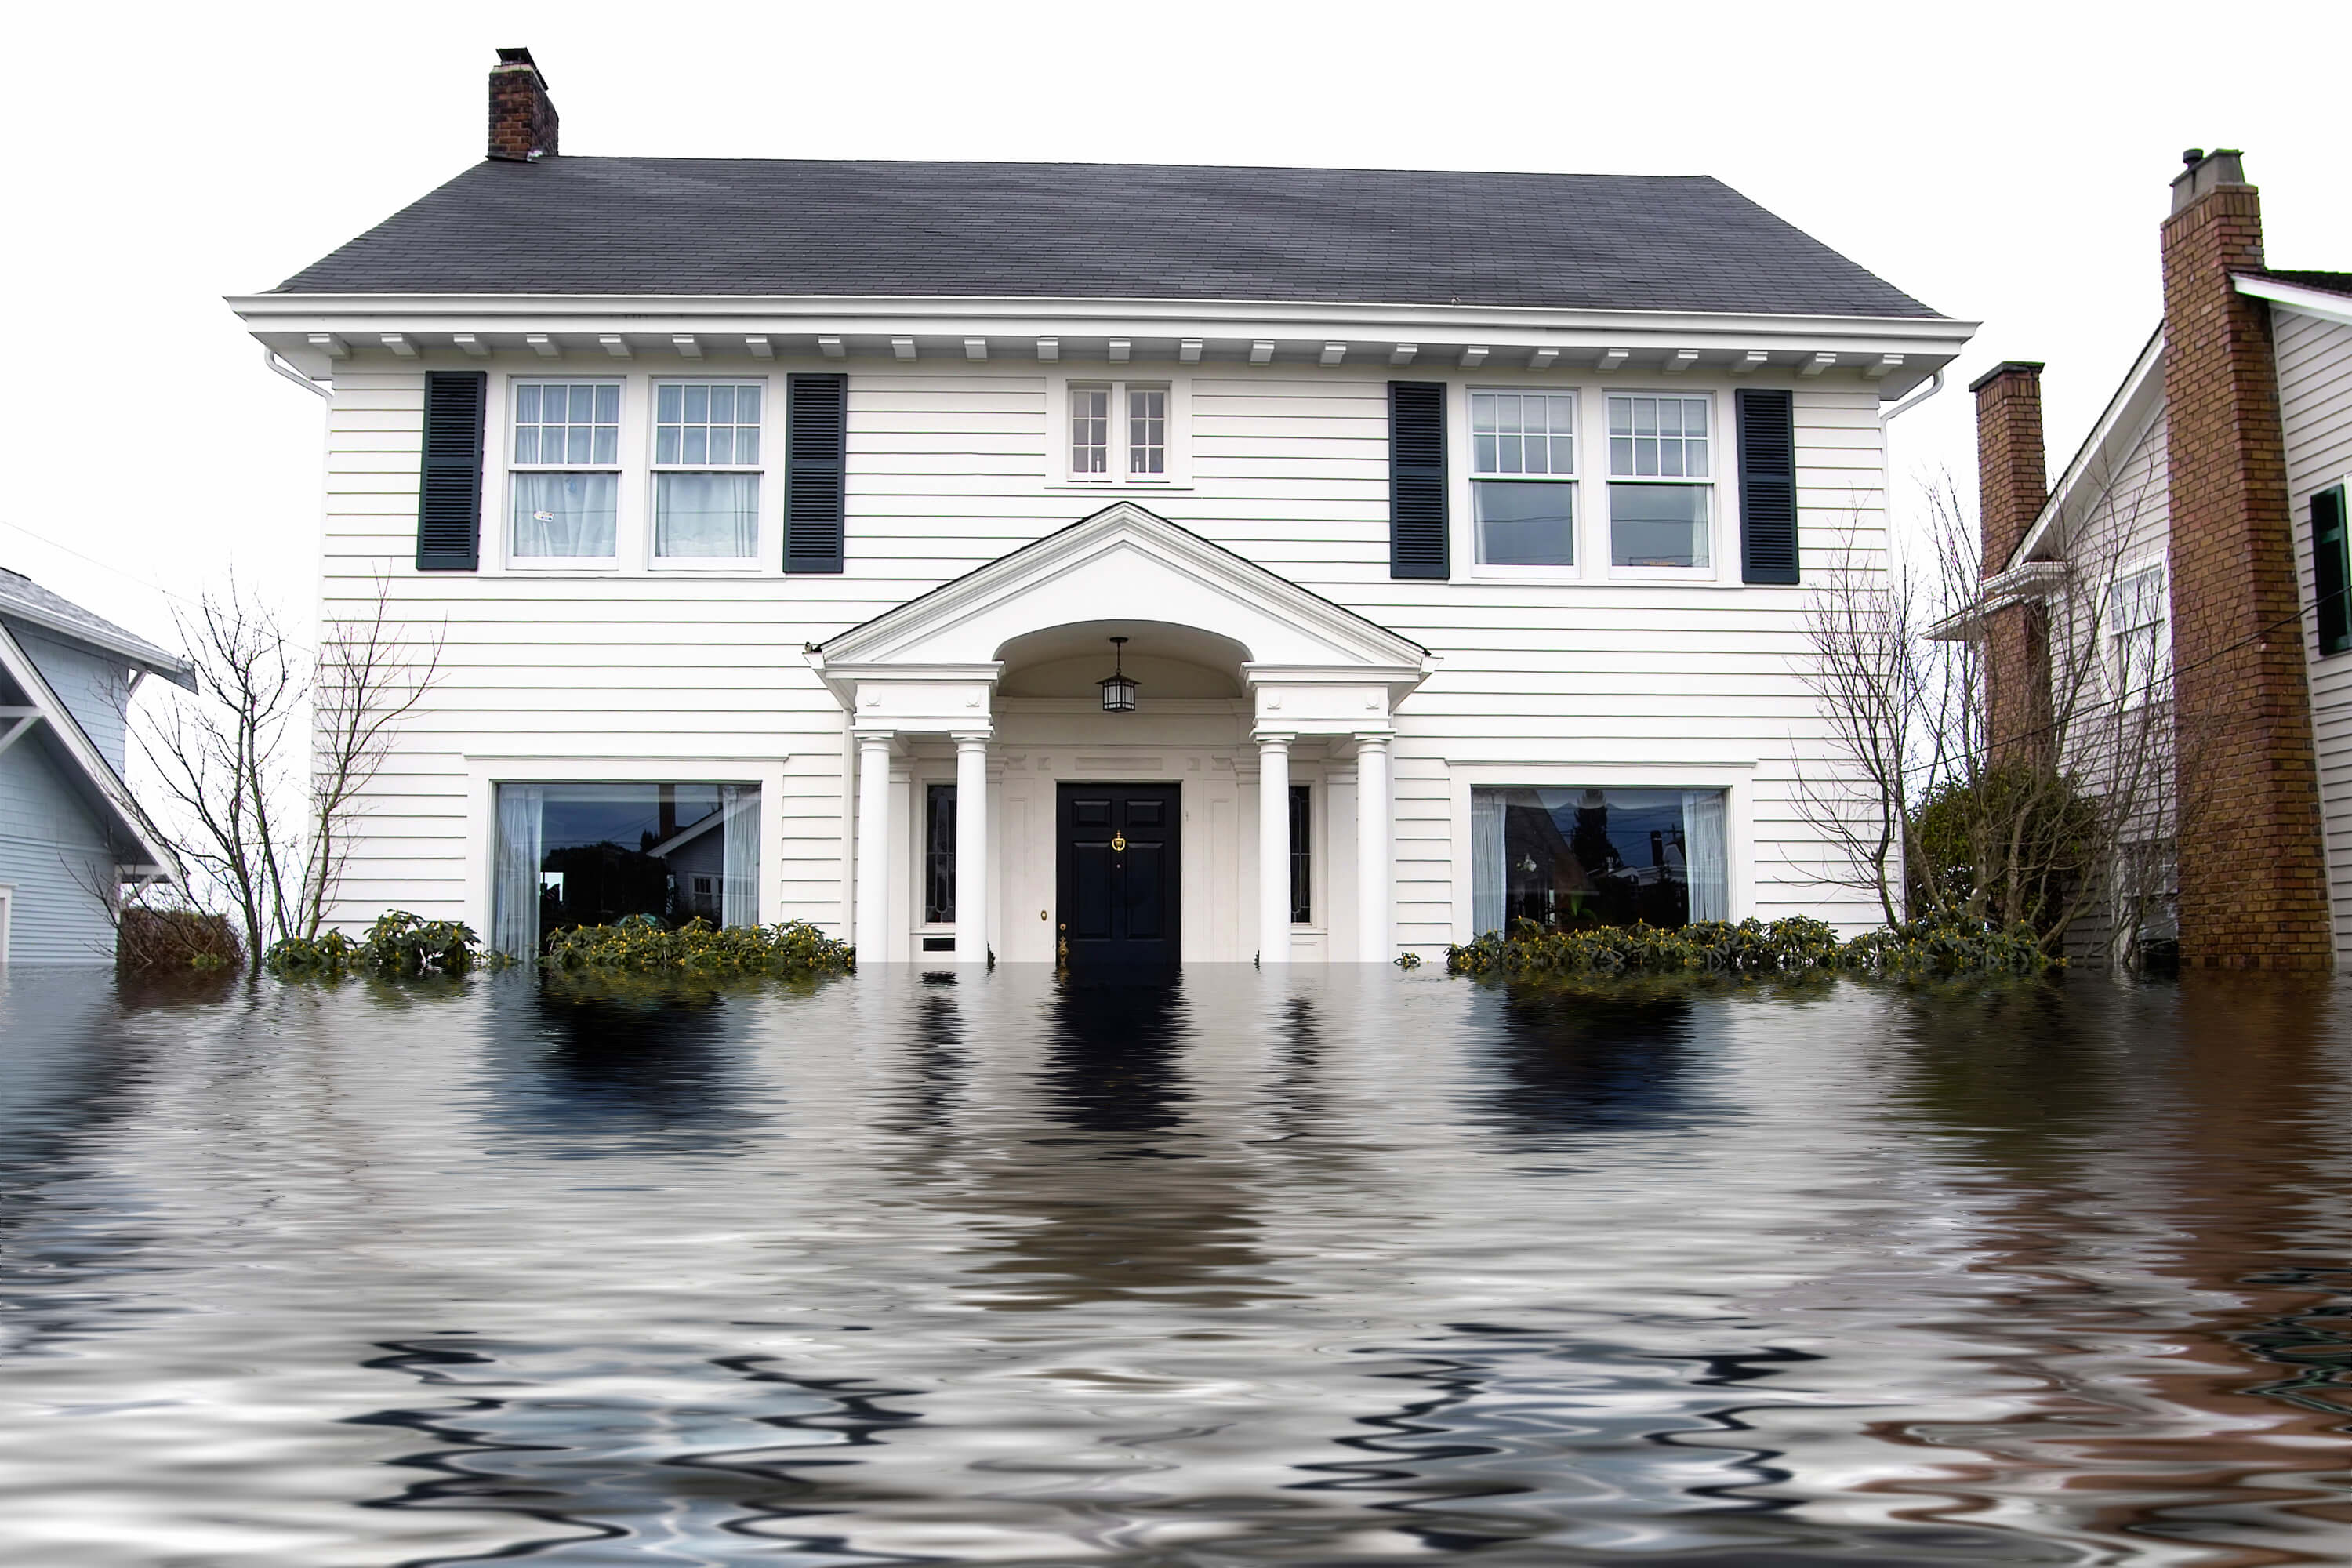 Water damage and flooding to house